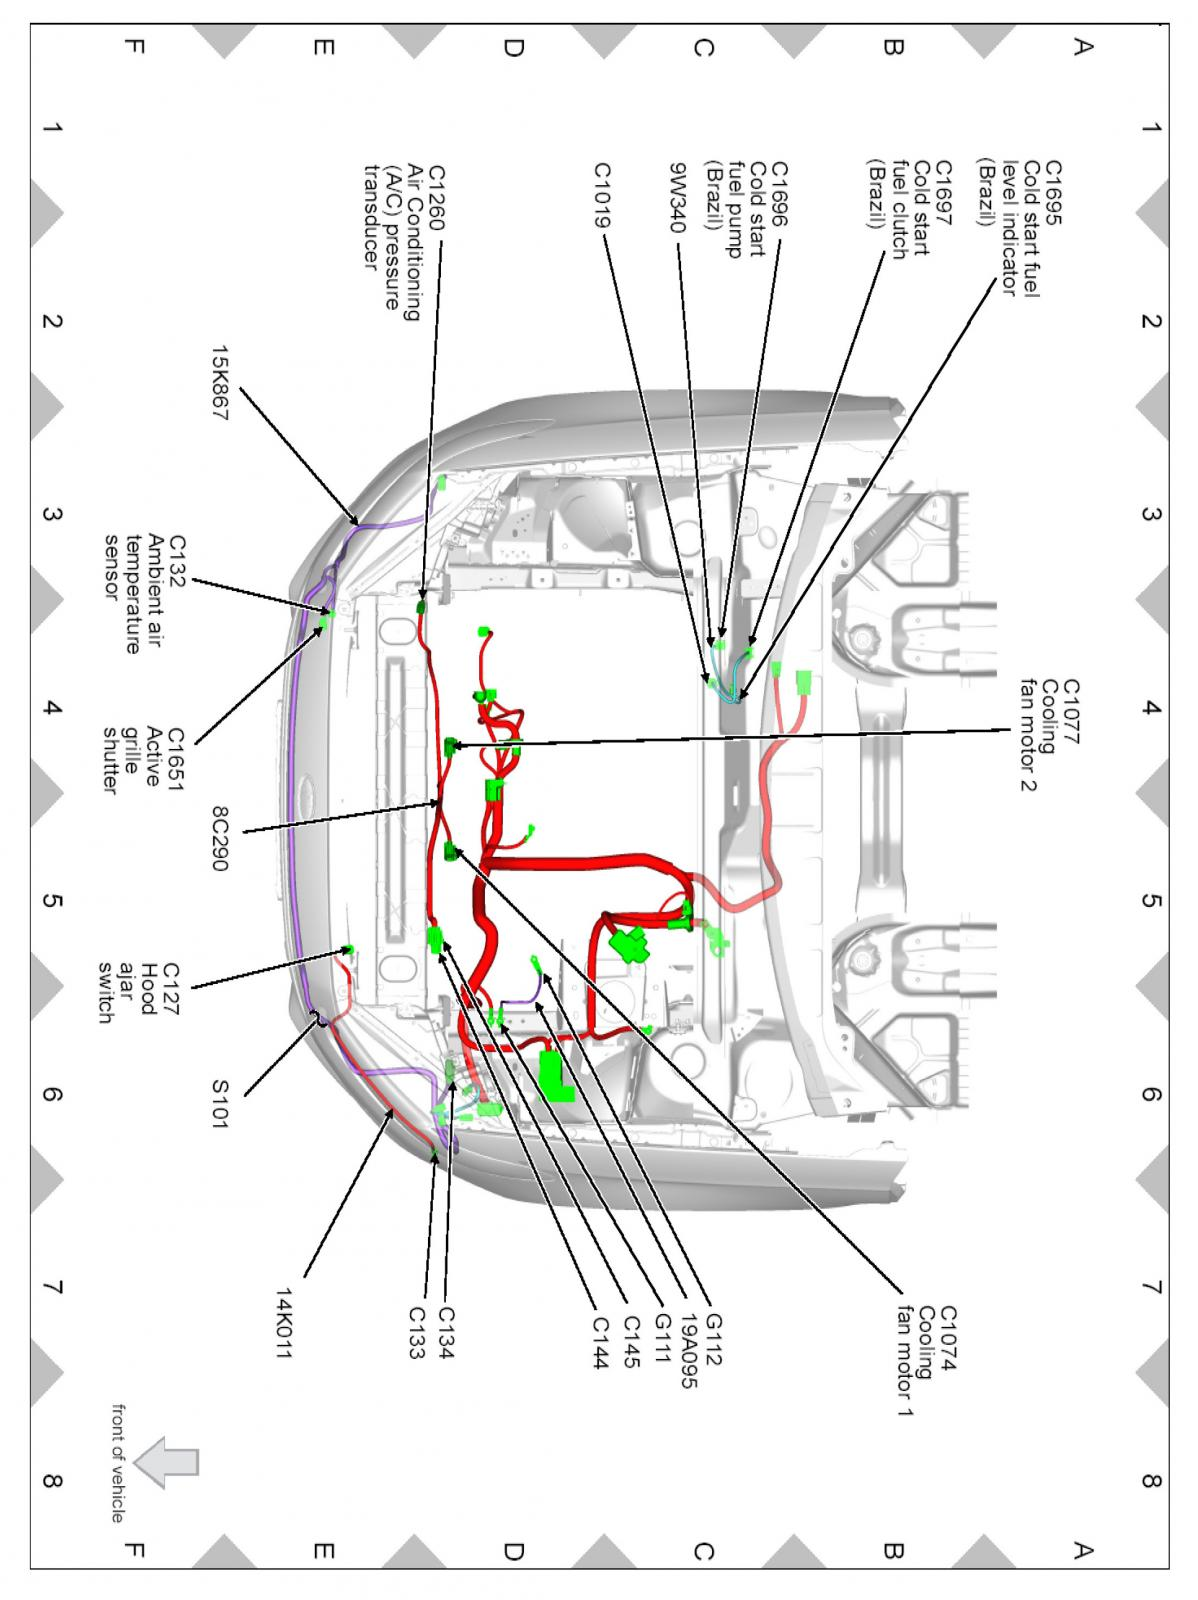 2013 Ford Fusion Hood Latch Wiring Diagram. Ford. Auto